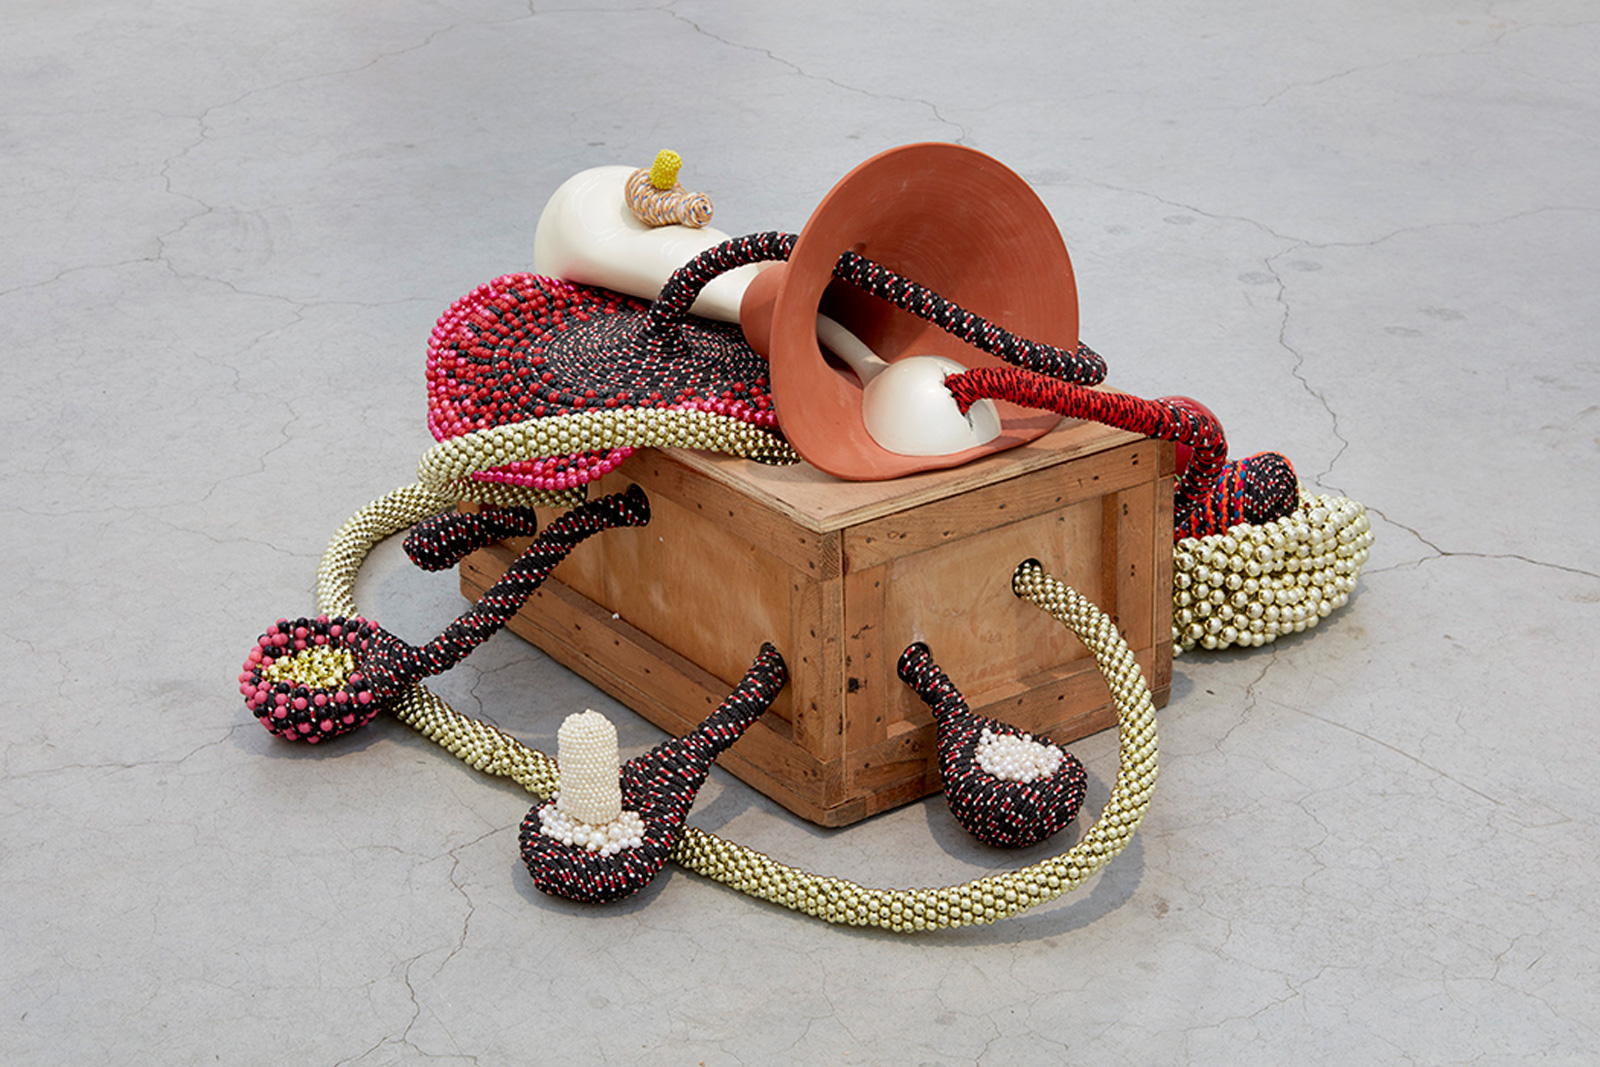 SUTURES Untitled 2015 Ropes, beads, ceramic, wood, fiberglass and resin 27.5 x 29.125 x 24.375 in (69.9 x 74 x 61.9 cm) Courtesy of Sikkema Jenkins & Co., New York 2018 Marc Straus Gallery